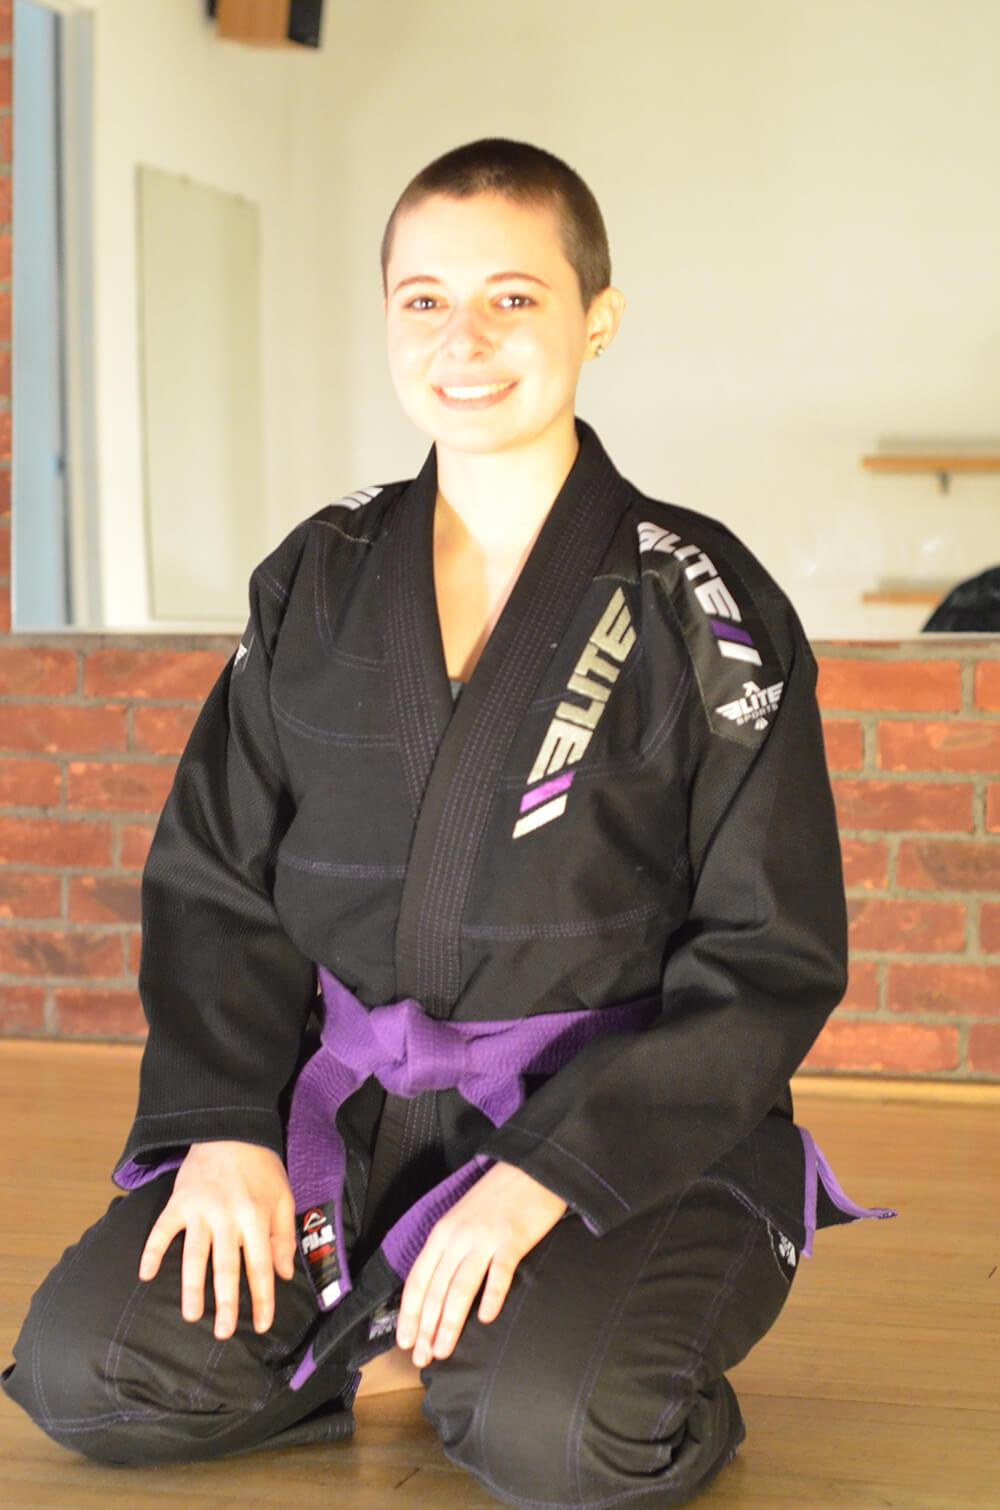 Elite Sports Team Elite Bjj Fighter Emily Dittmar  Image7